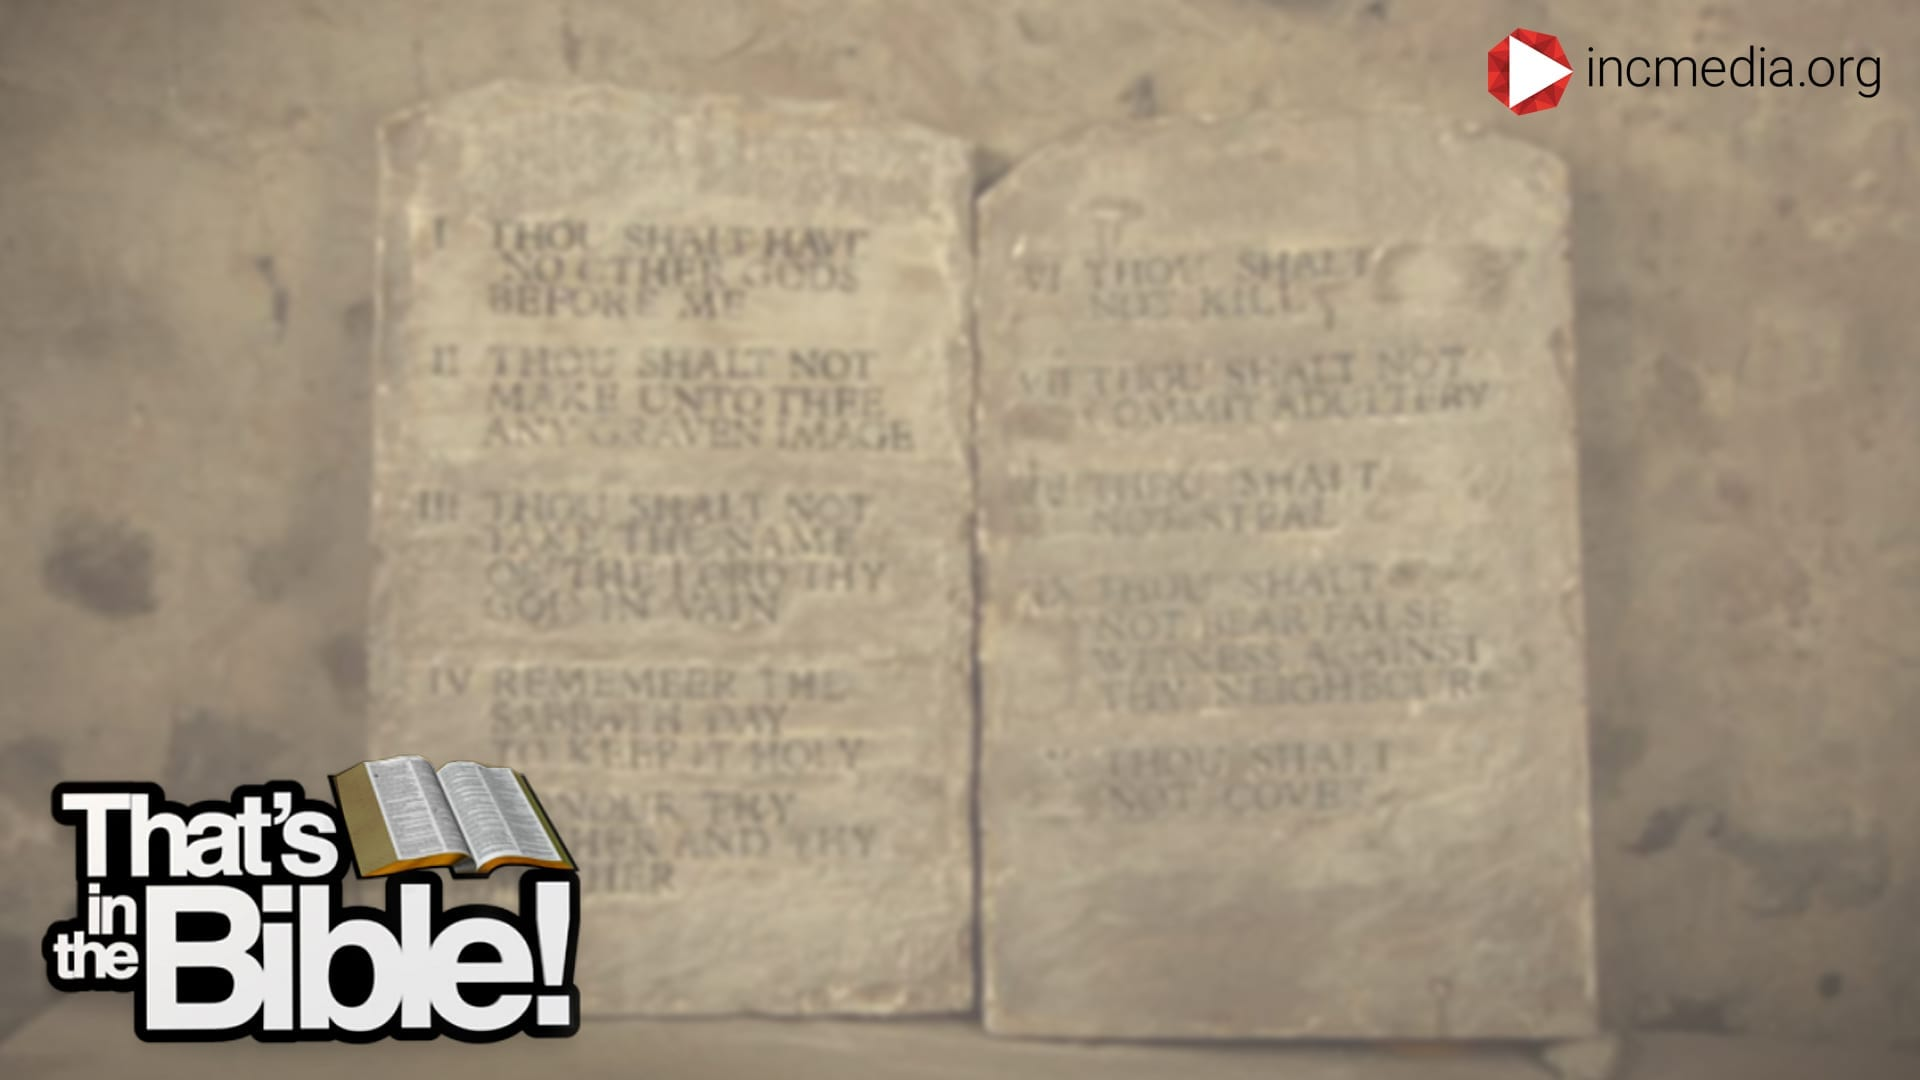 stone tablets with text